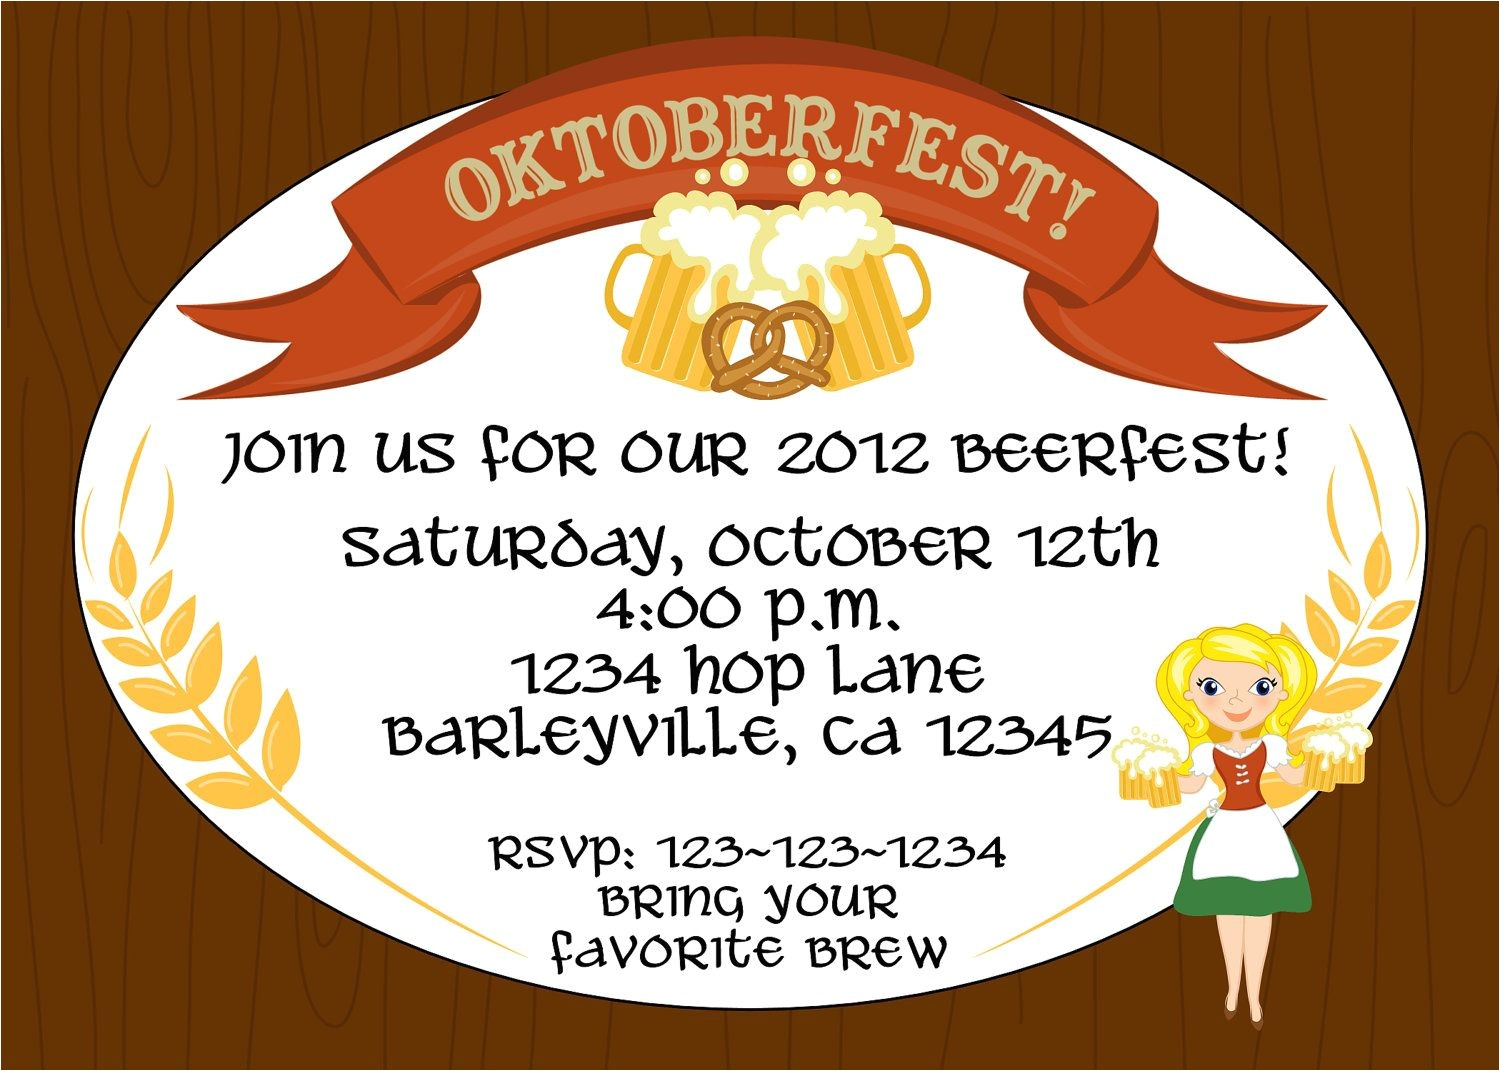 Oktoberfest Party Invitation Templates Creative Oktoberfest Beerfest Invitation Template Design